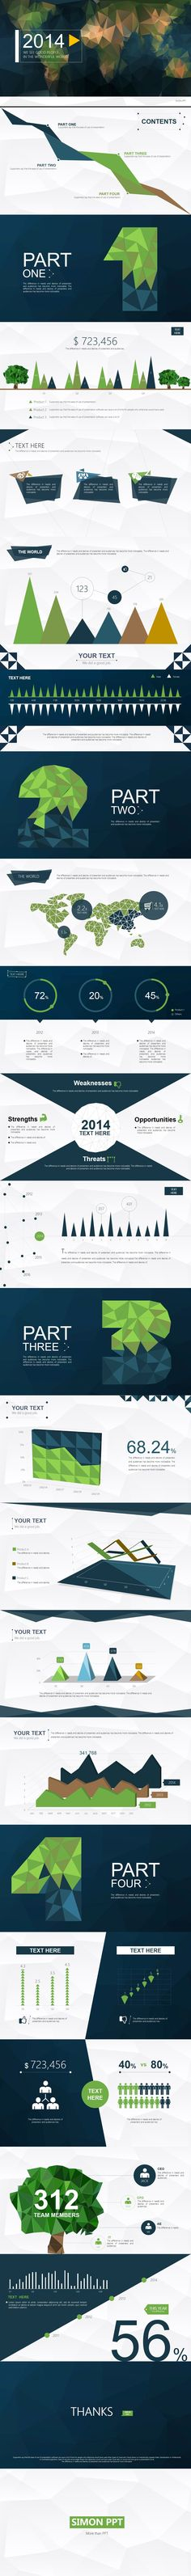 #infographic #layout